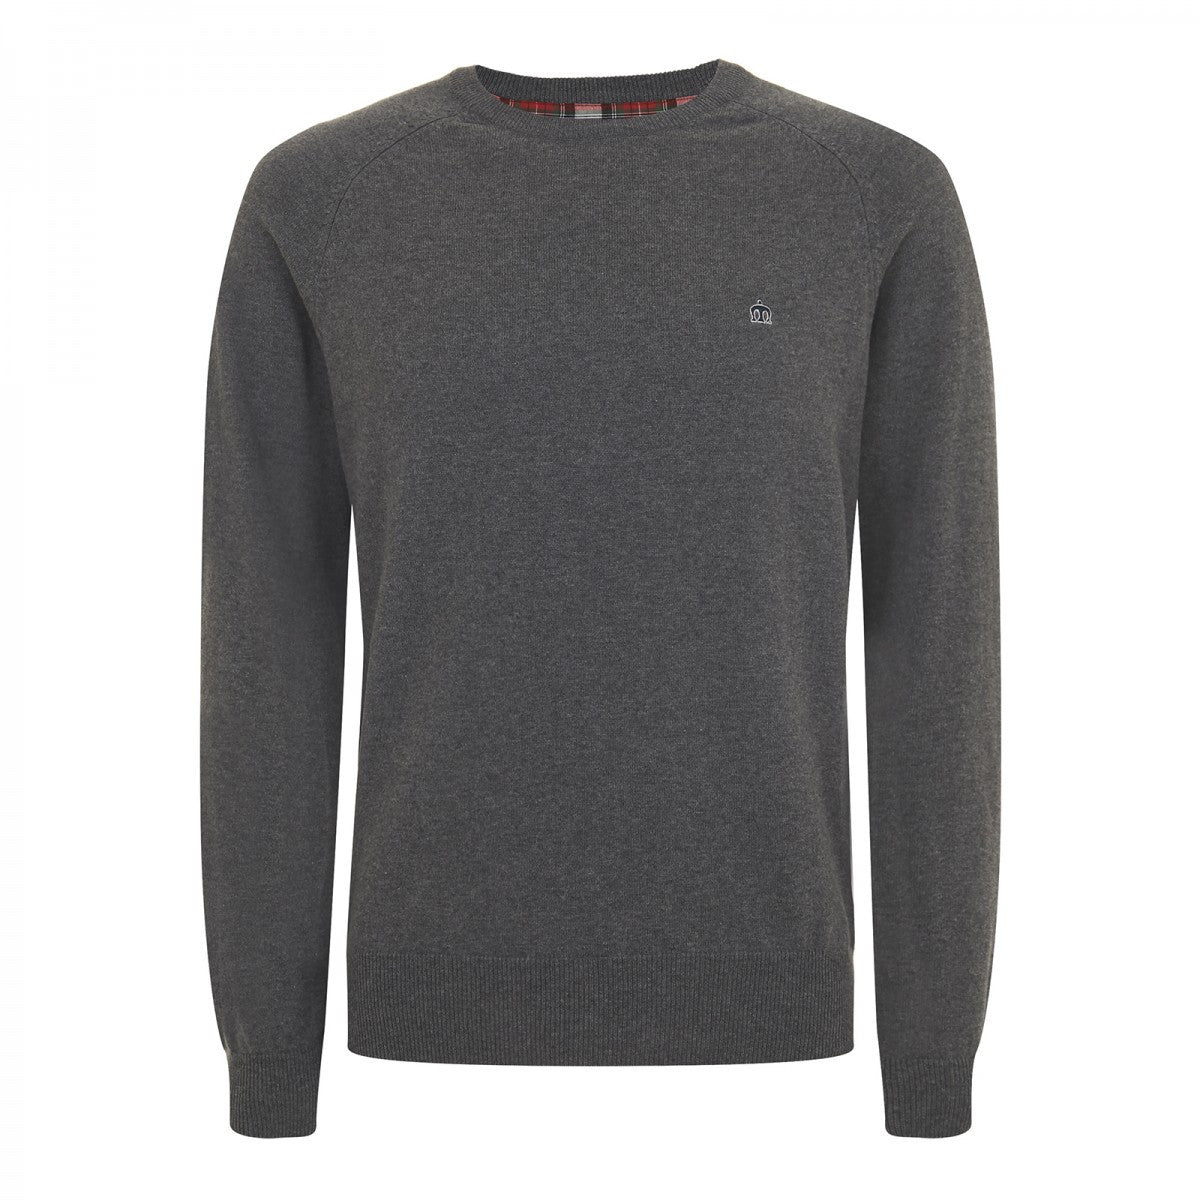 Berty Grey Sweater - Merc